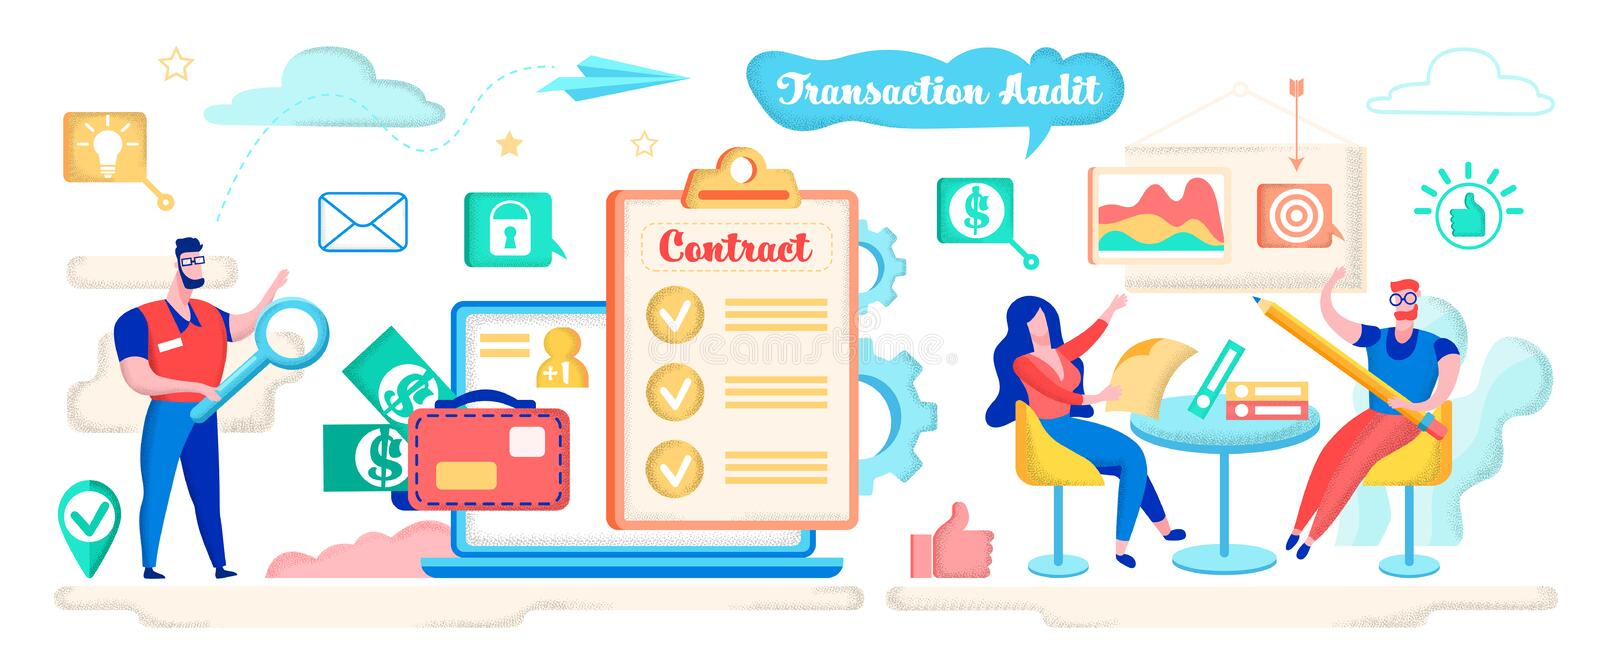 Transaction Audit, Check Contract with Magnifier. stock illustration